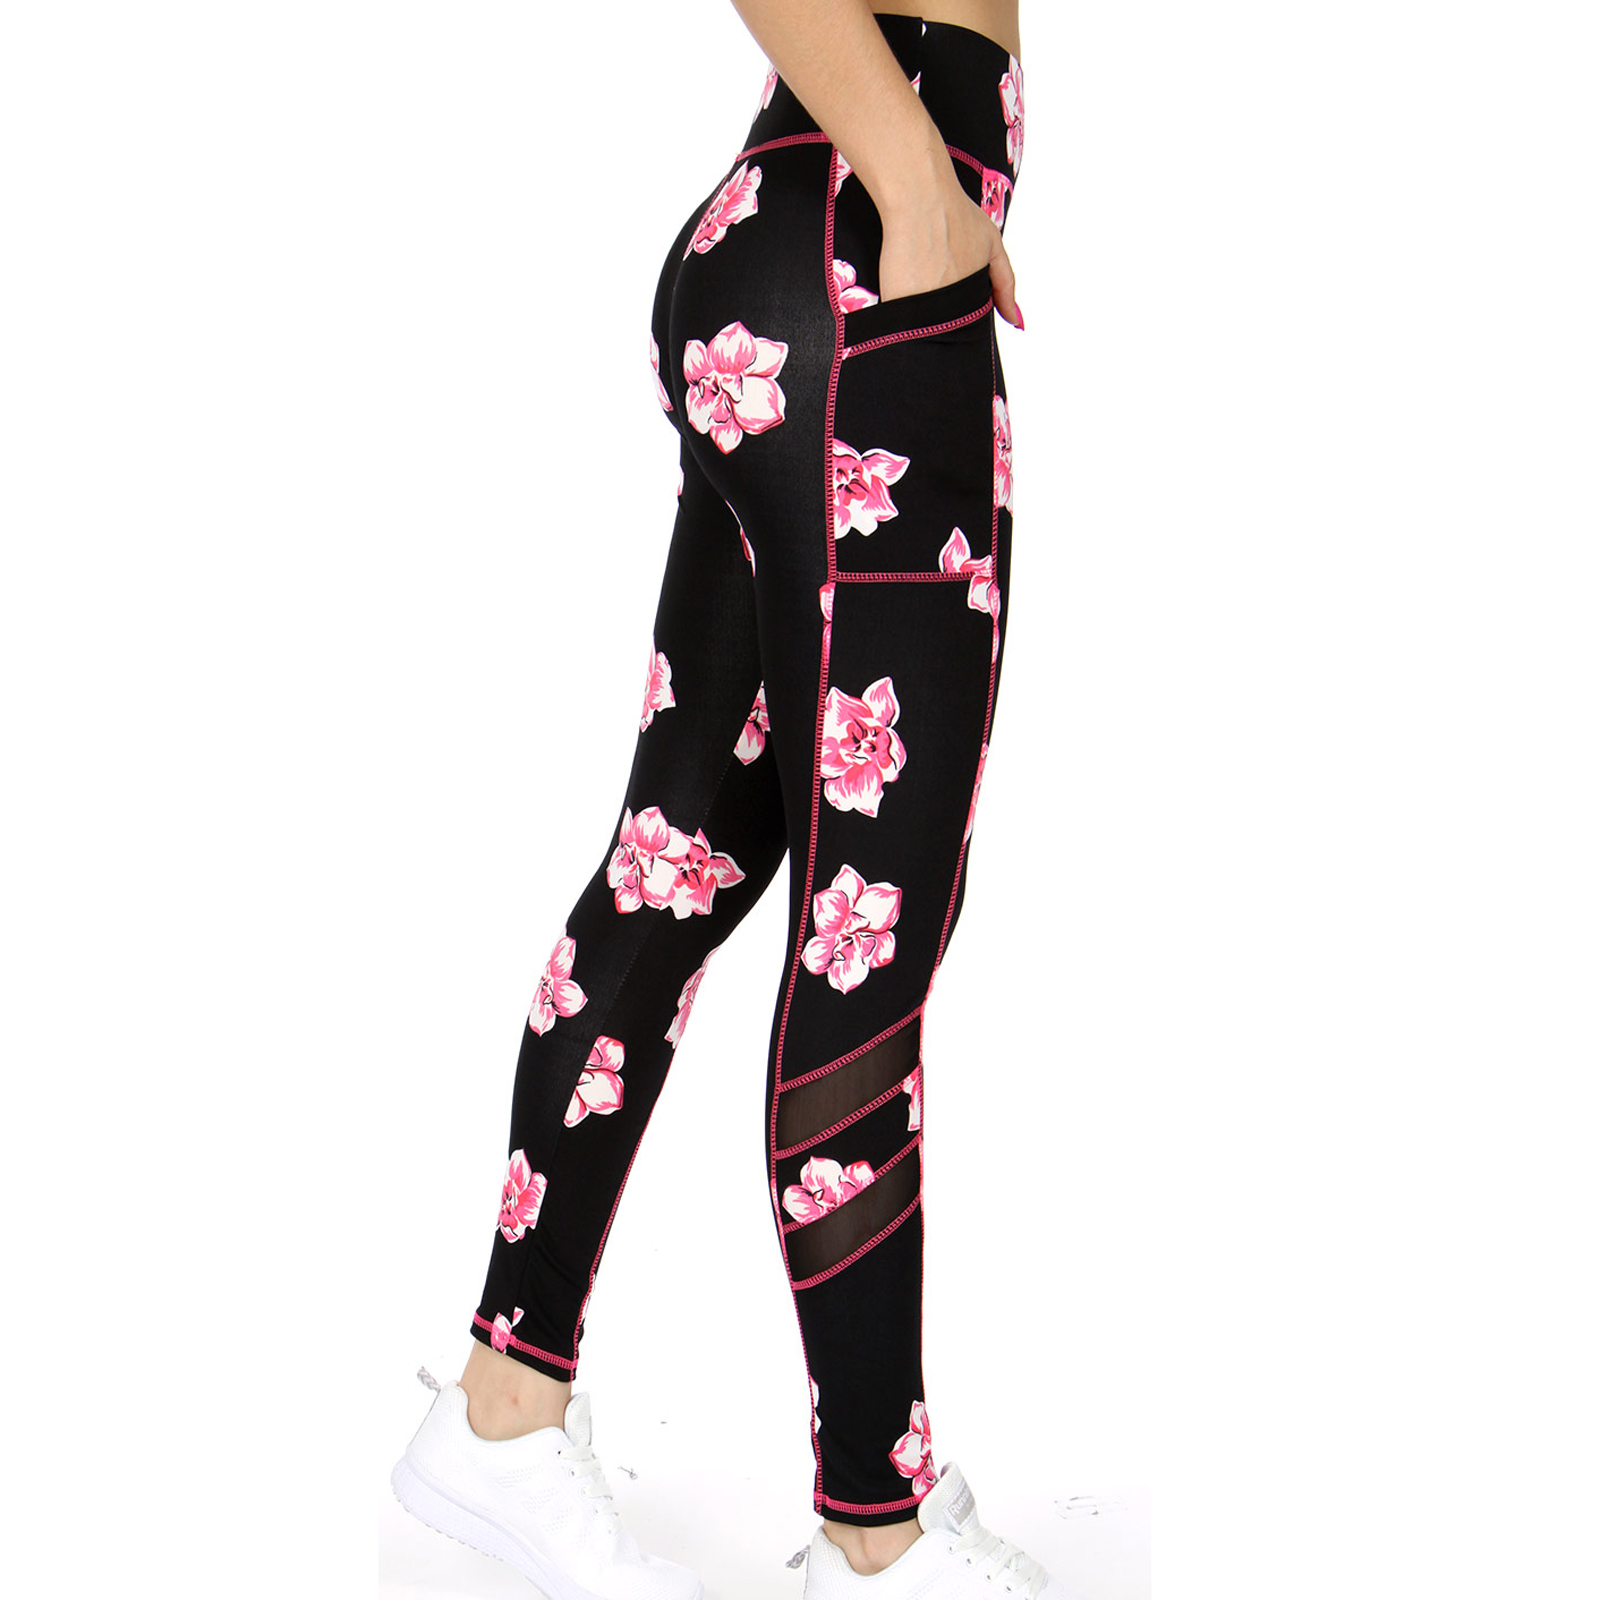 cedc9bfd55 Pungles - Online Store - Floral Athletic Mesh Panels Side Pockets ...